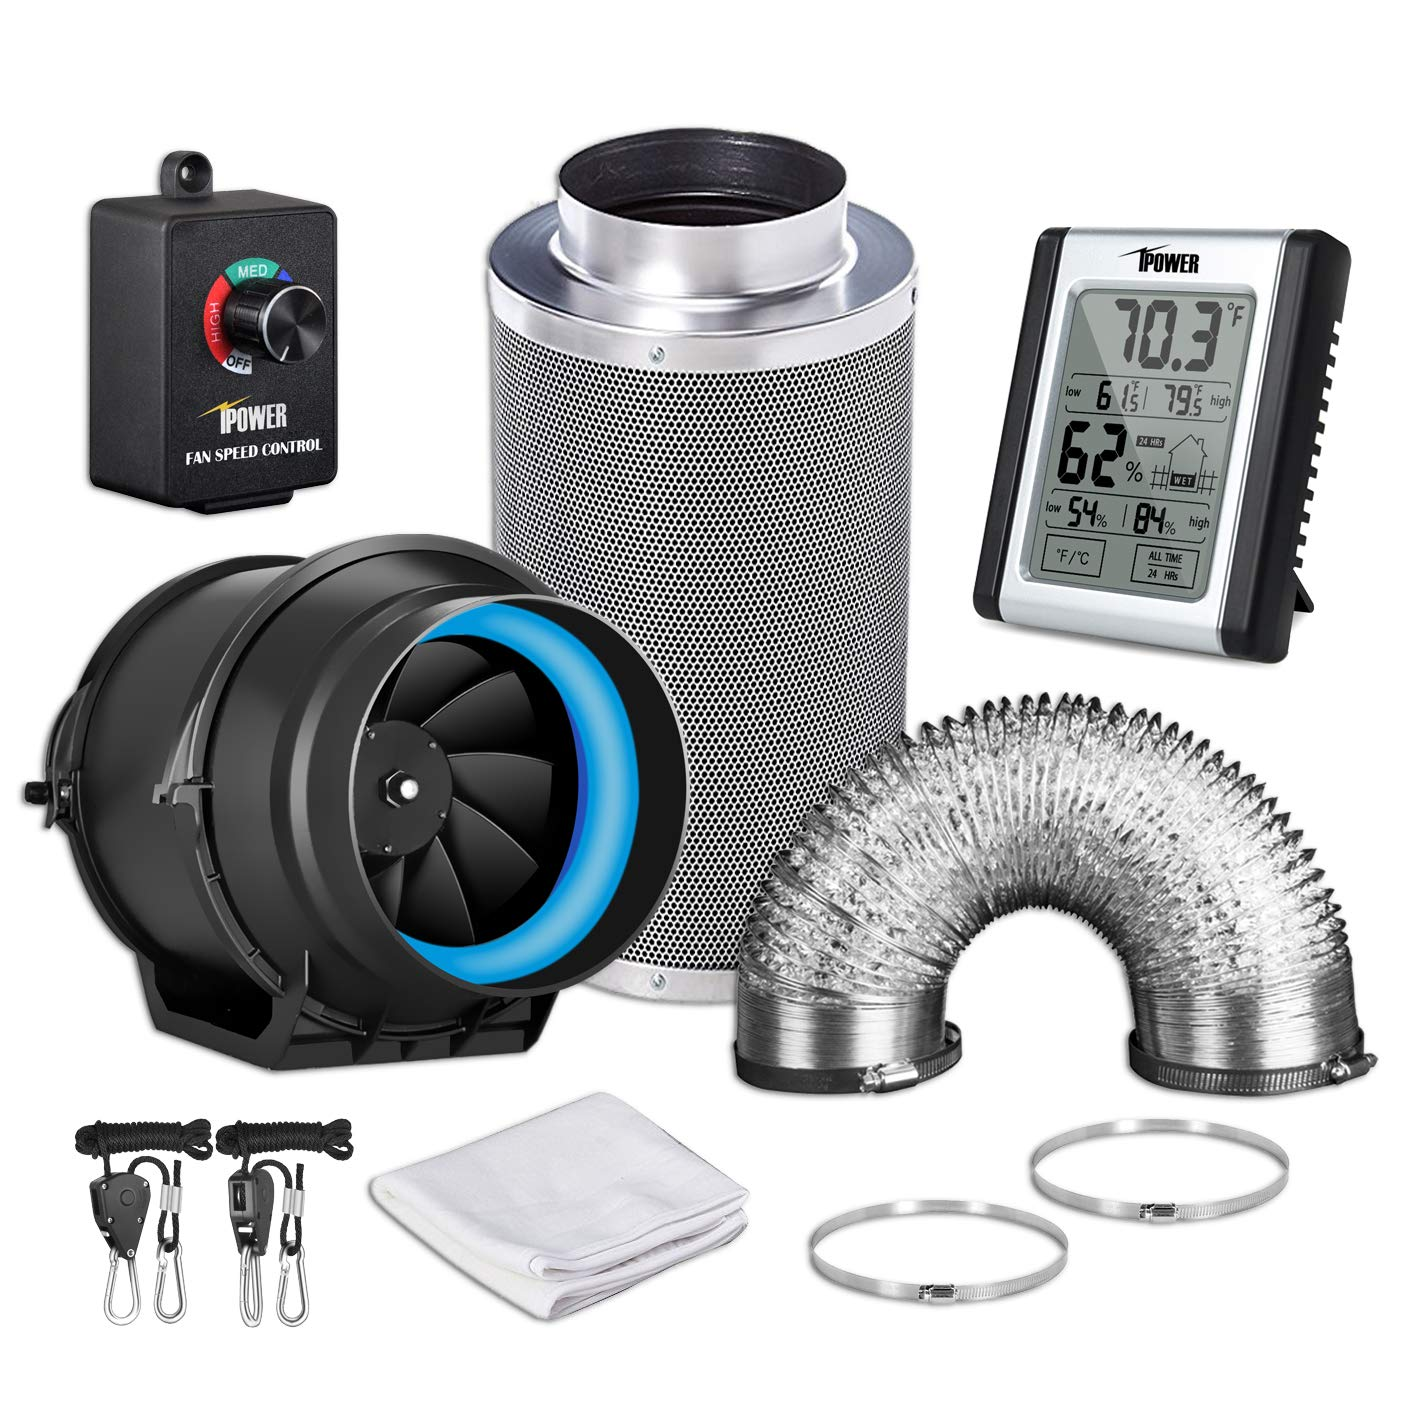 iPower GLFANXEXPSET6D16CHUMD 6 Inch 350 CFM Inline Carbon Filter 16 Feet Ducting with Fan Speed Controller and Temperature Humidity Monitor and Grow Tent Ventilation, Kits, Black by iPower